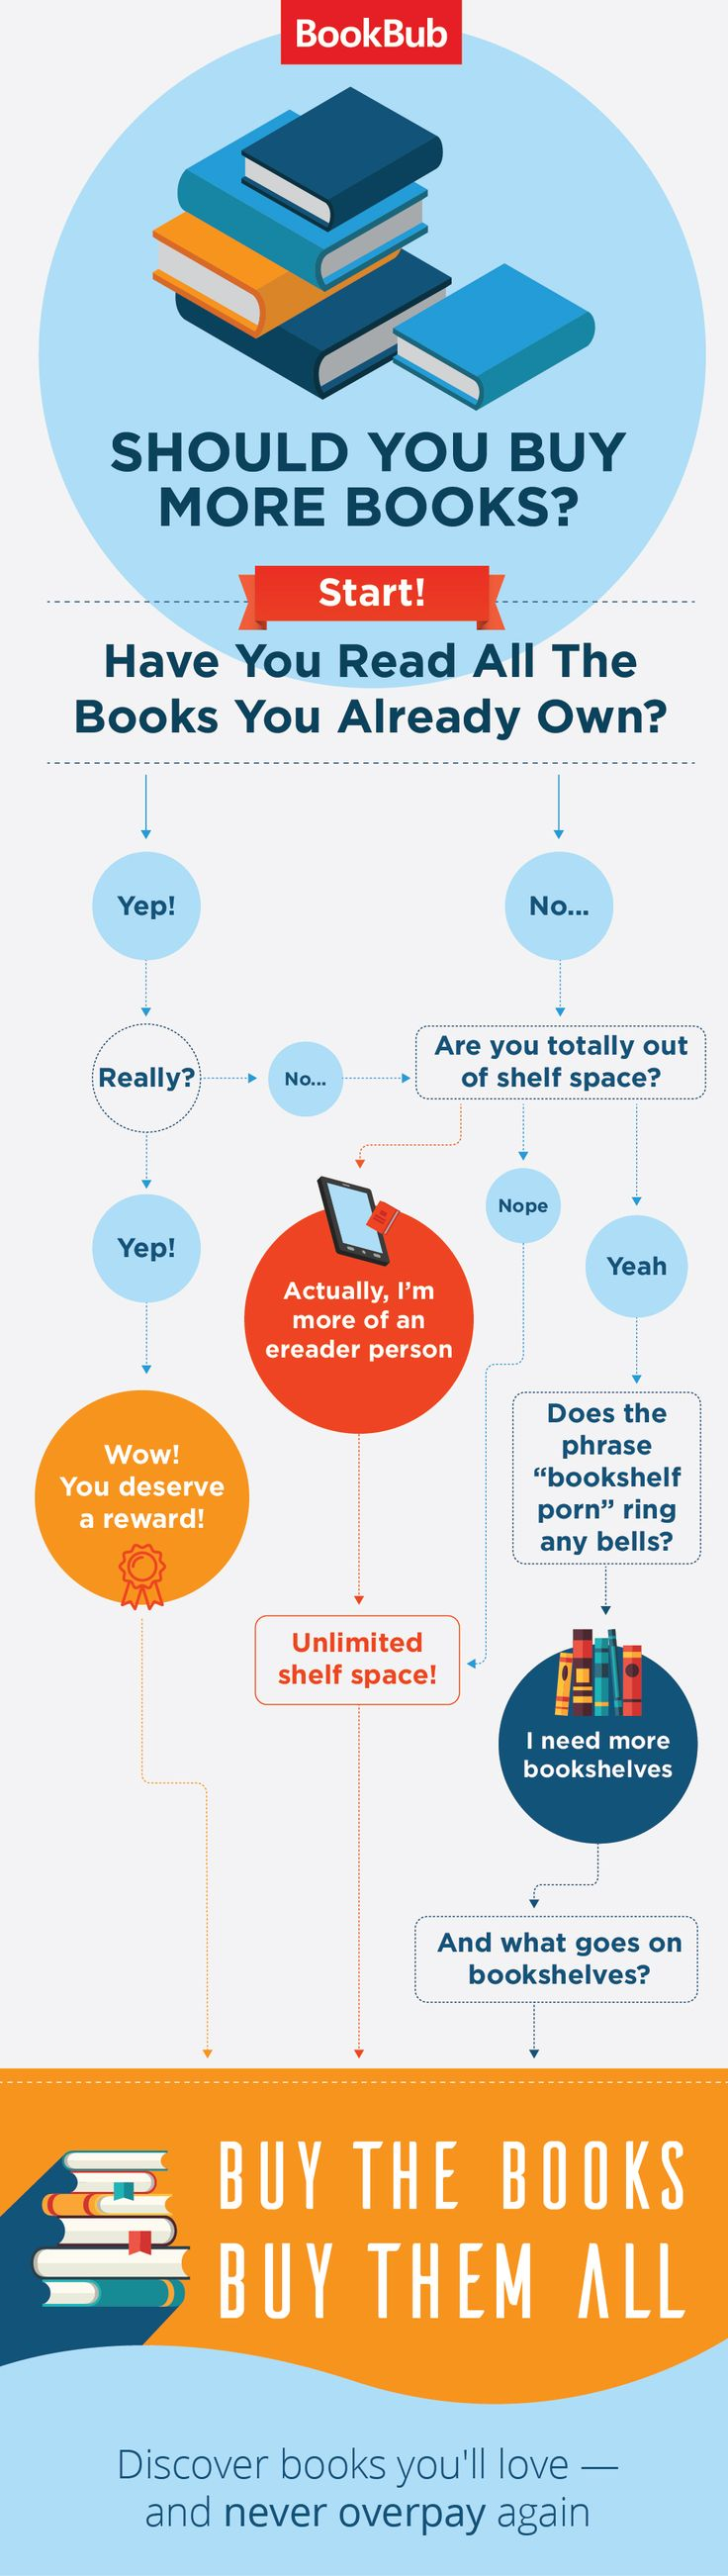 buy books info graphic